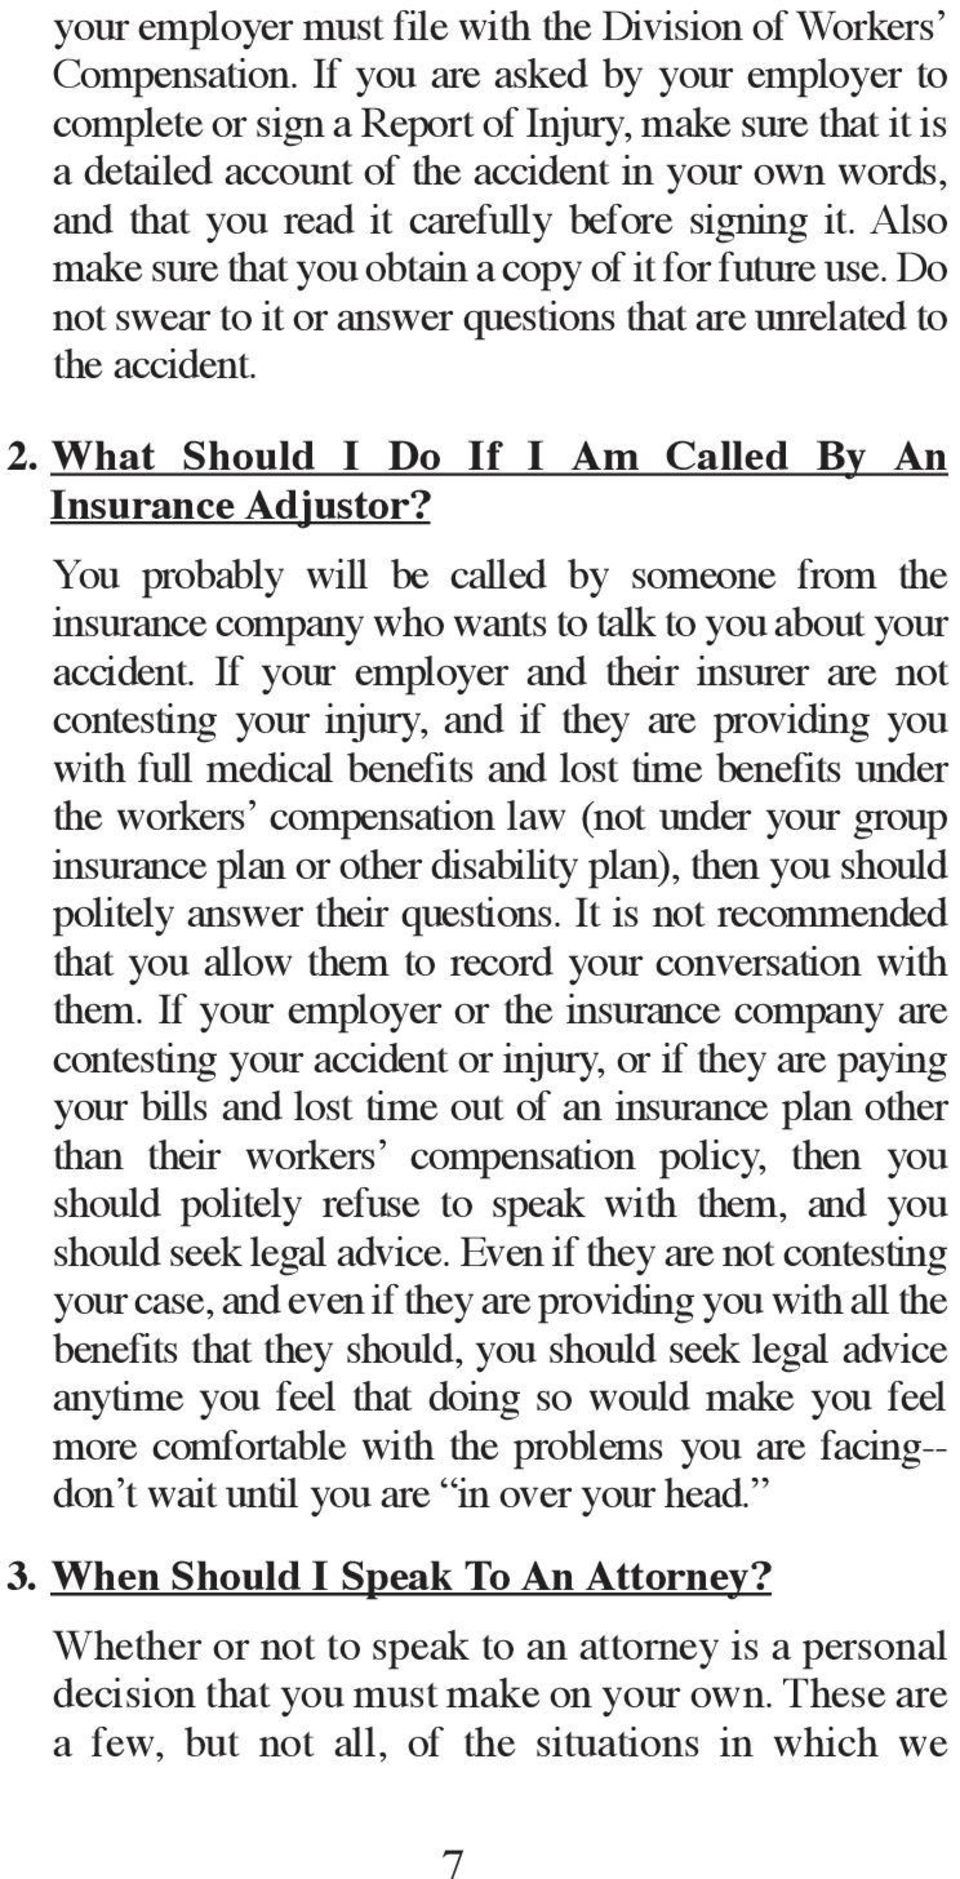 Also make sure that you obtain a copy of it for future use. Do not swear to it or answer questions that are unrelated to the accident. 2. What Should I Do If I Am Called By An Insurance Adjustor?